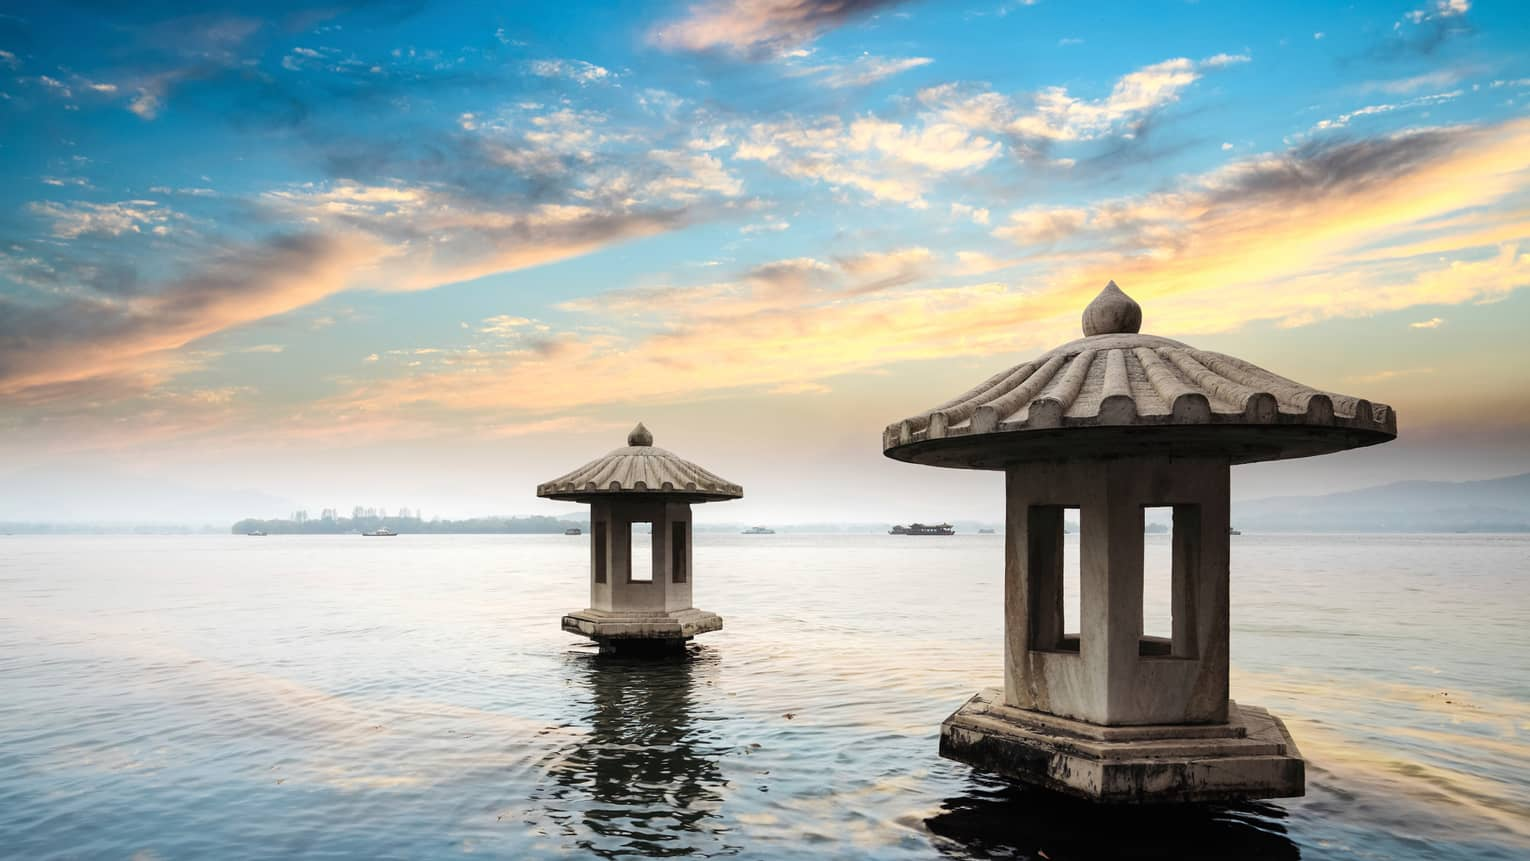 Sunset reflected on West Lake, two cement pagoda structures in water